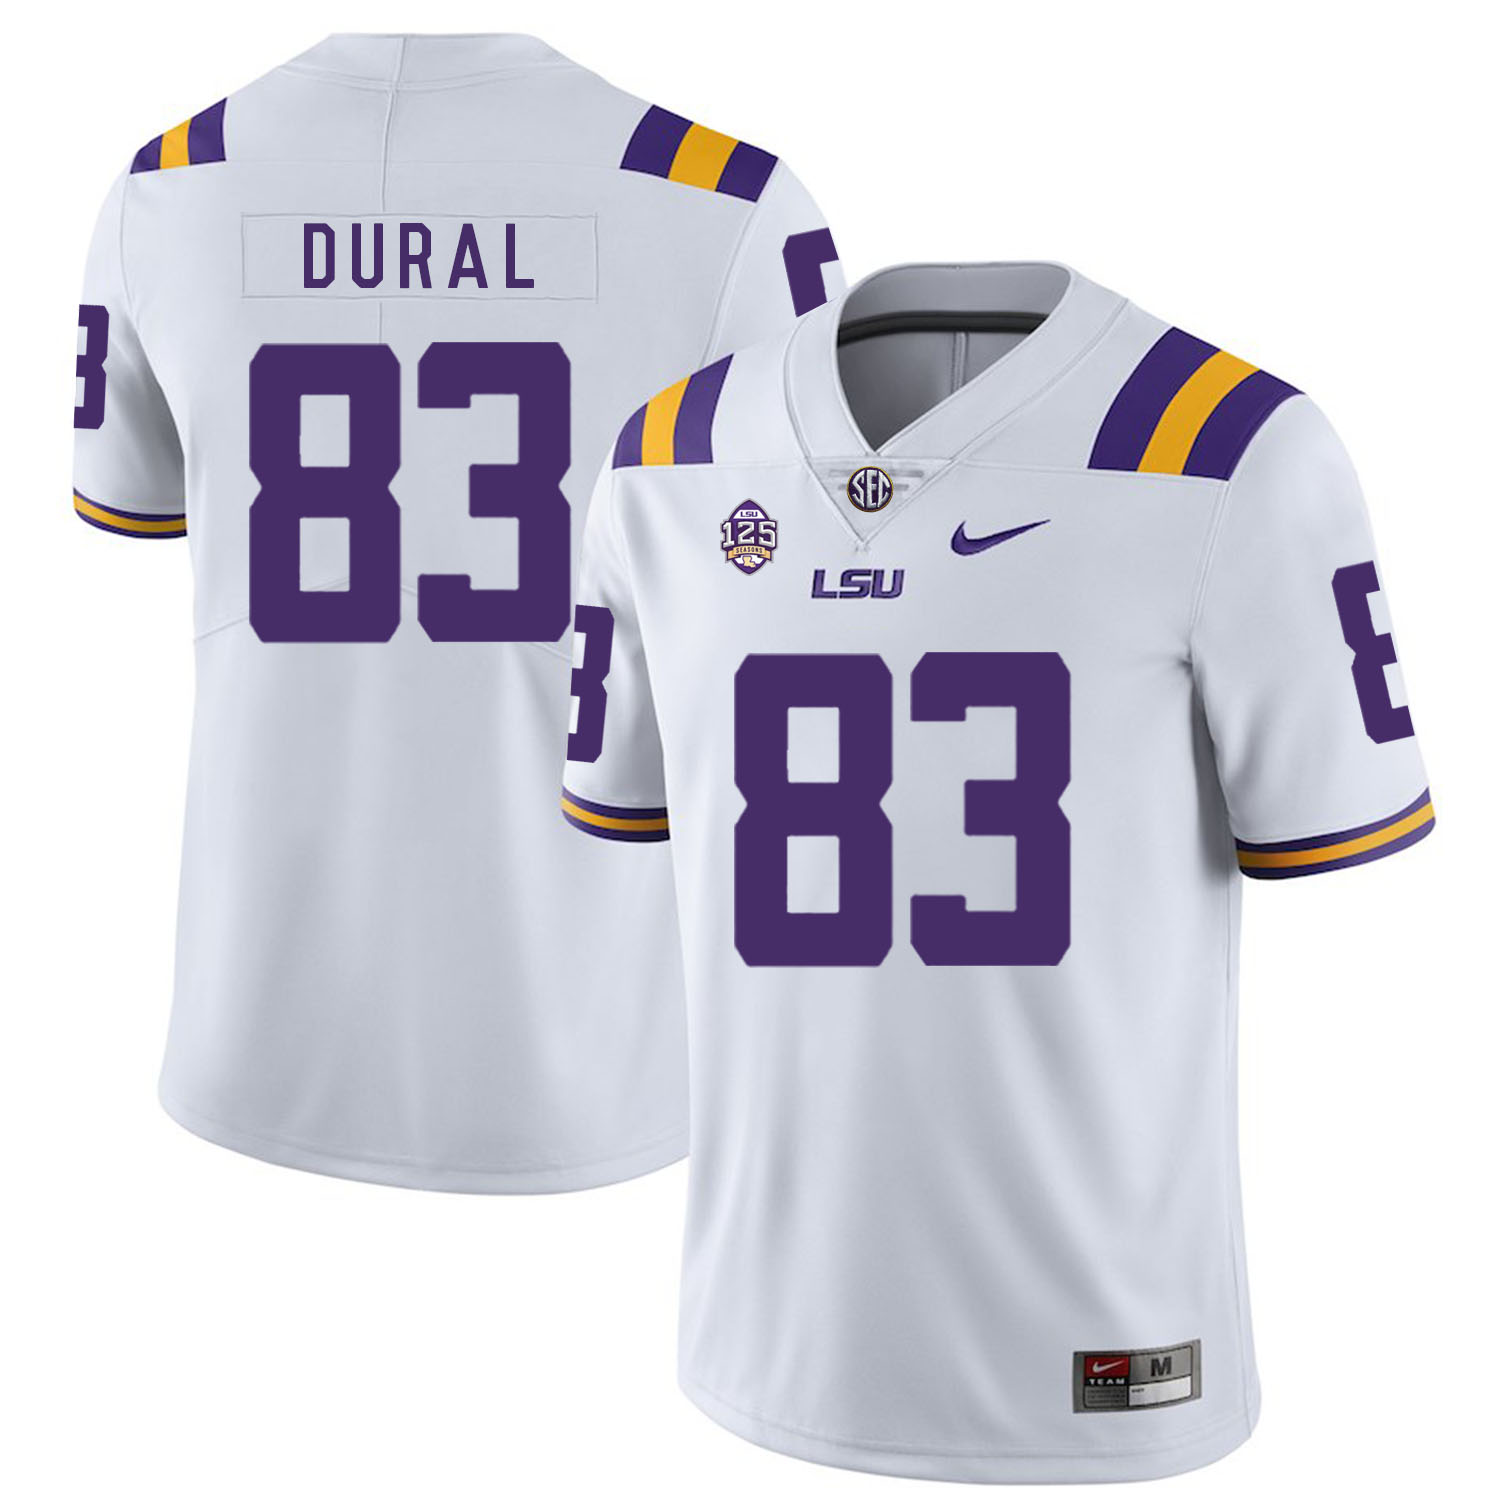 LSU Tigers 83 Travin Dural White Nike College Football Jersey